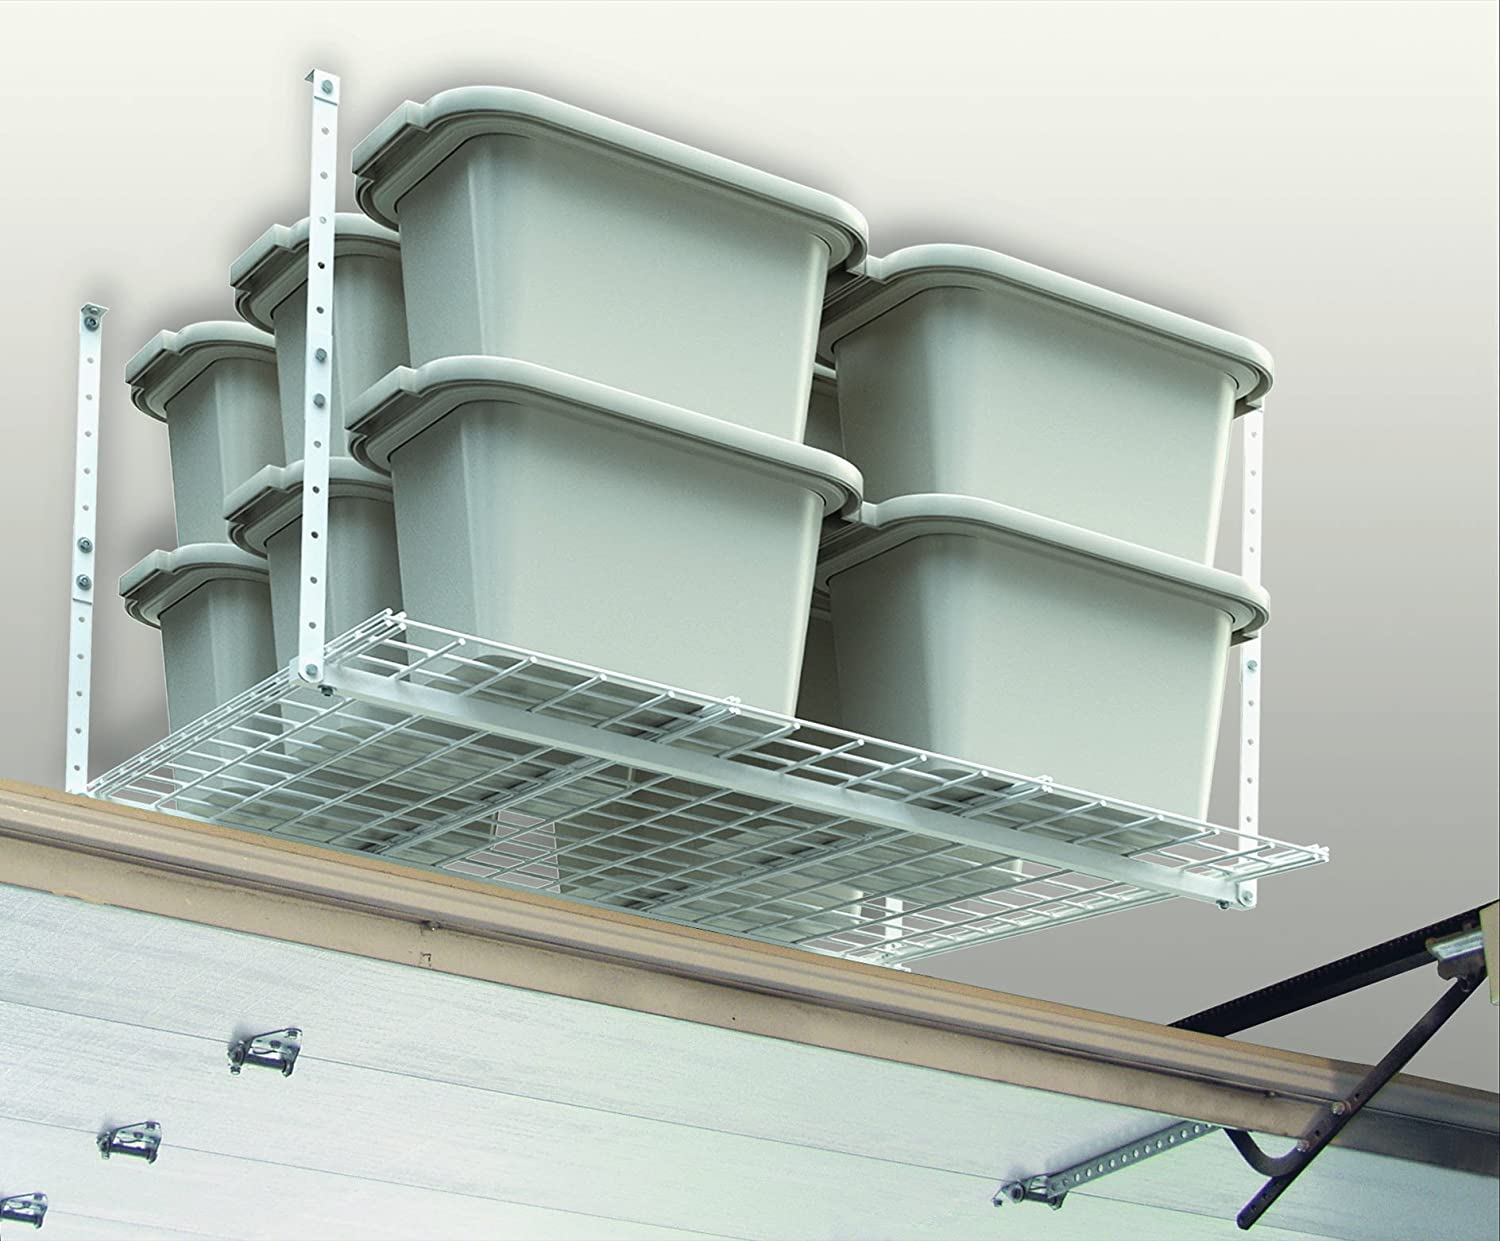 Overhead storage system, ceiling mount garage